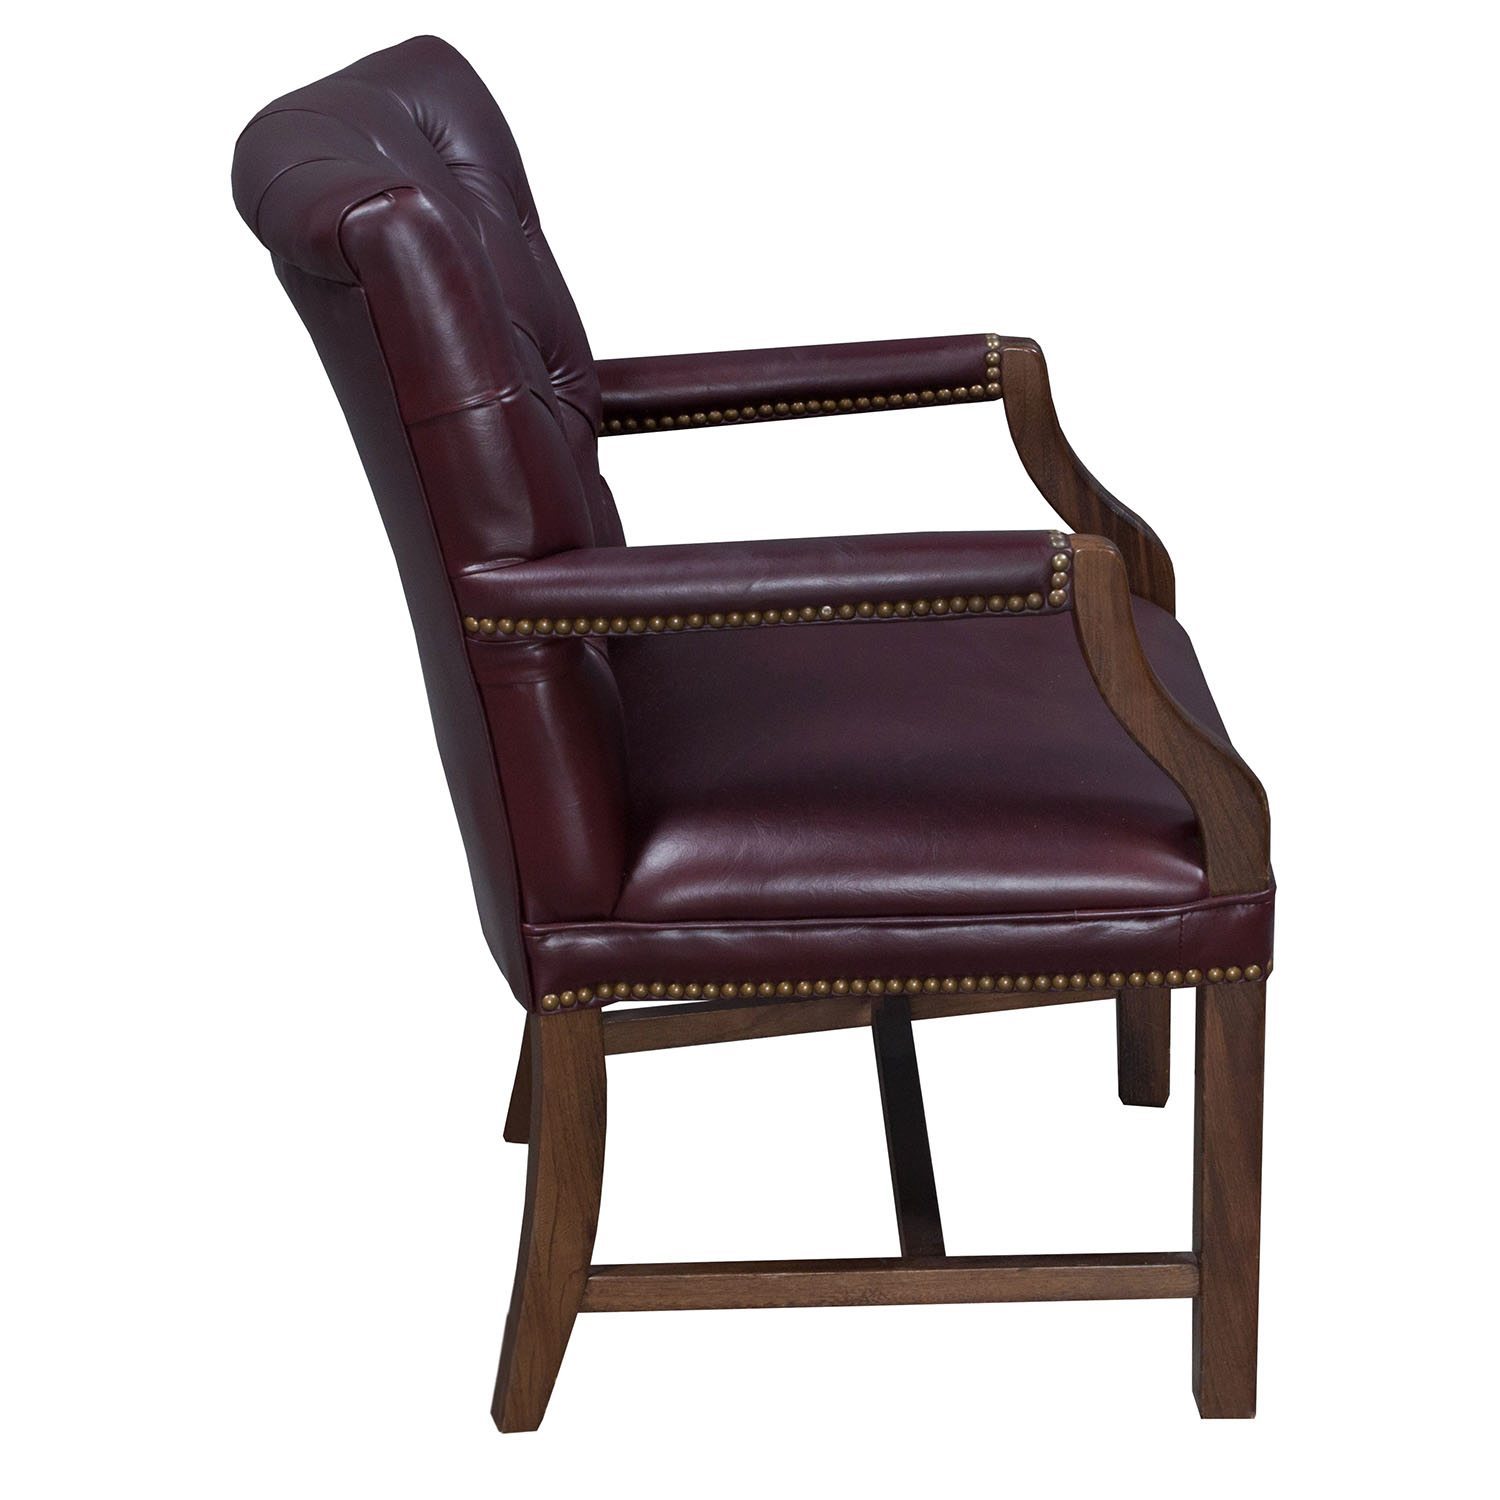 tufted side chair rowe keller traditional walnut leather burgundy